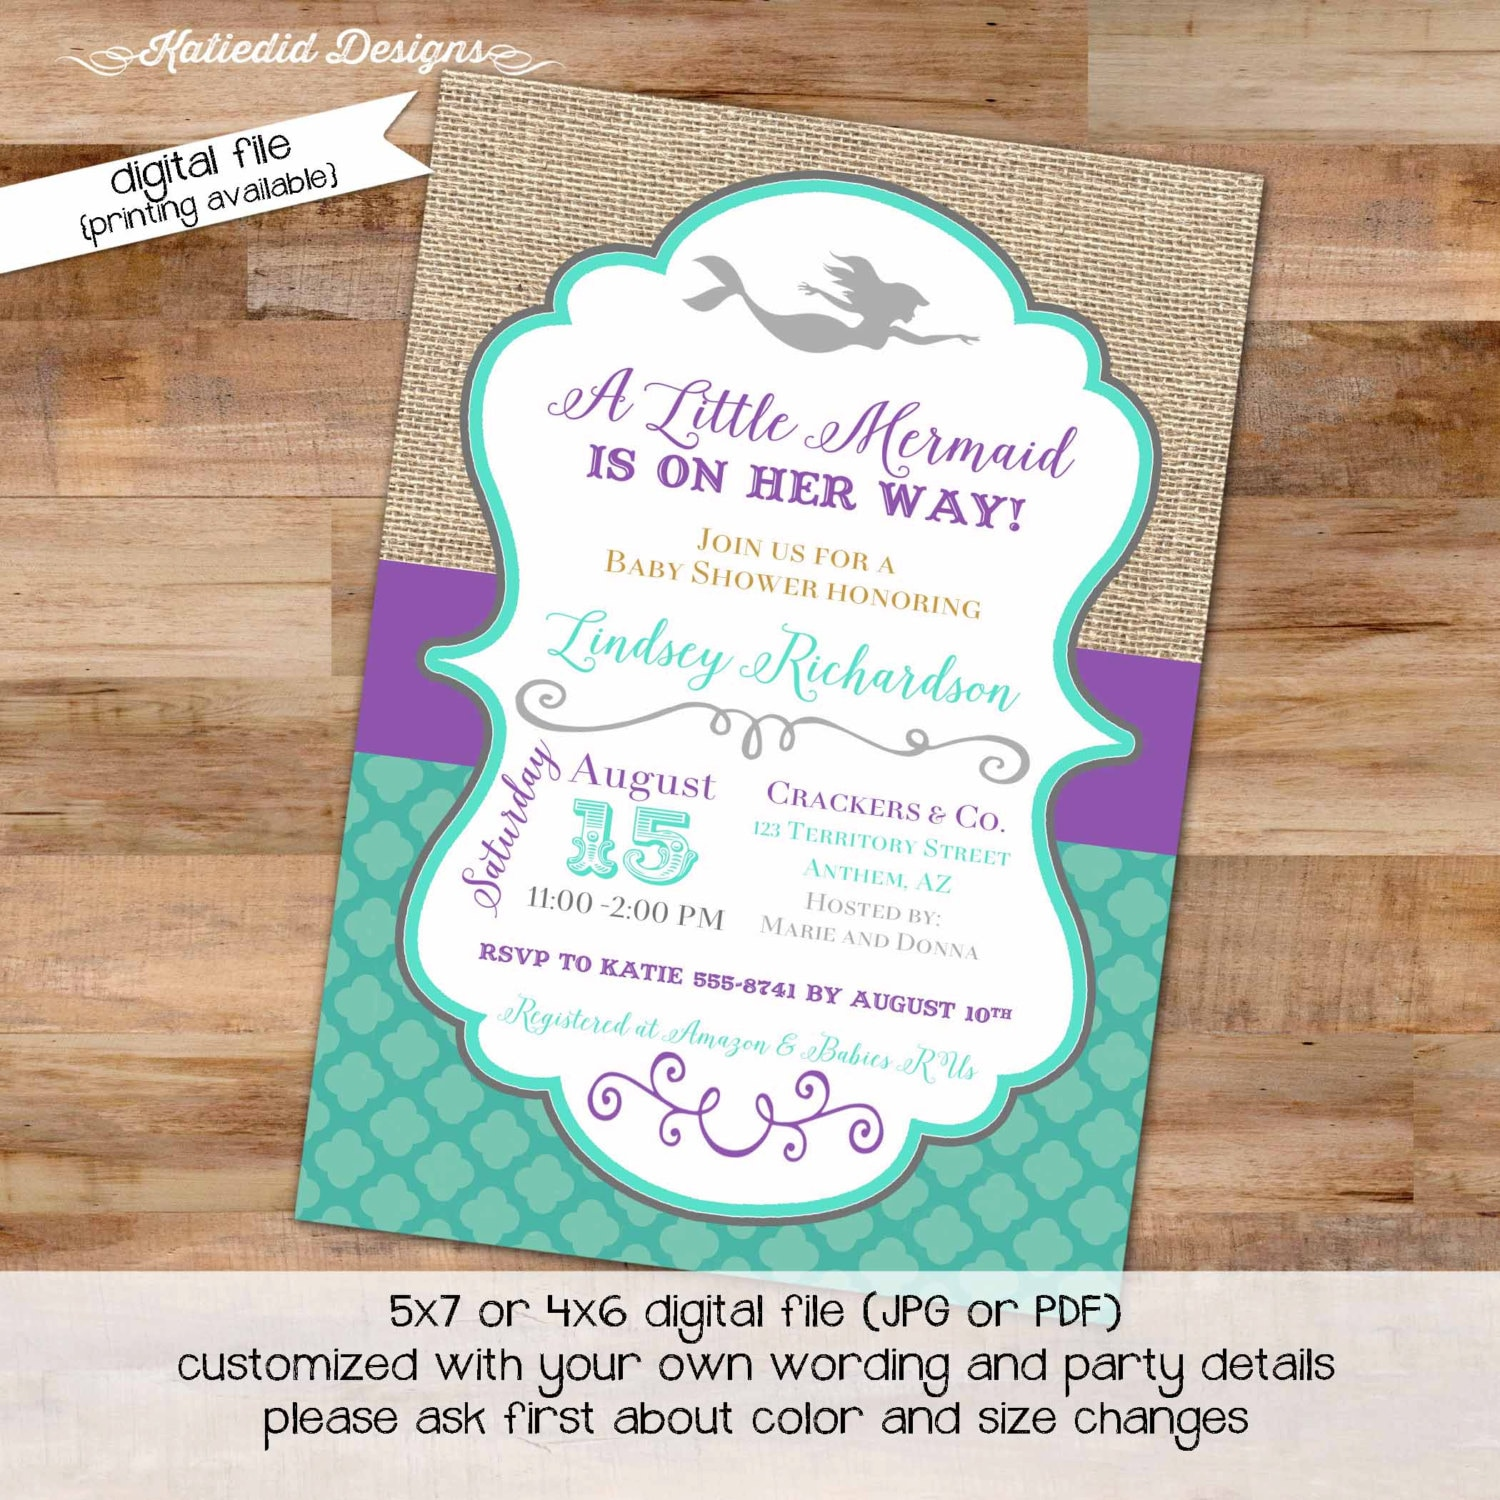 Mermaid invitation couples baby shower Purple teal 1st birthday ...